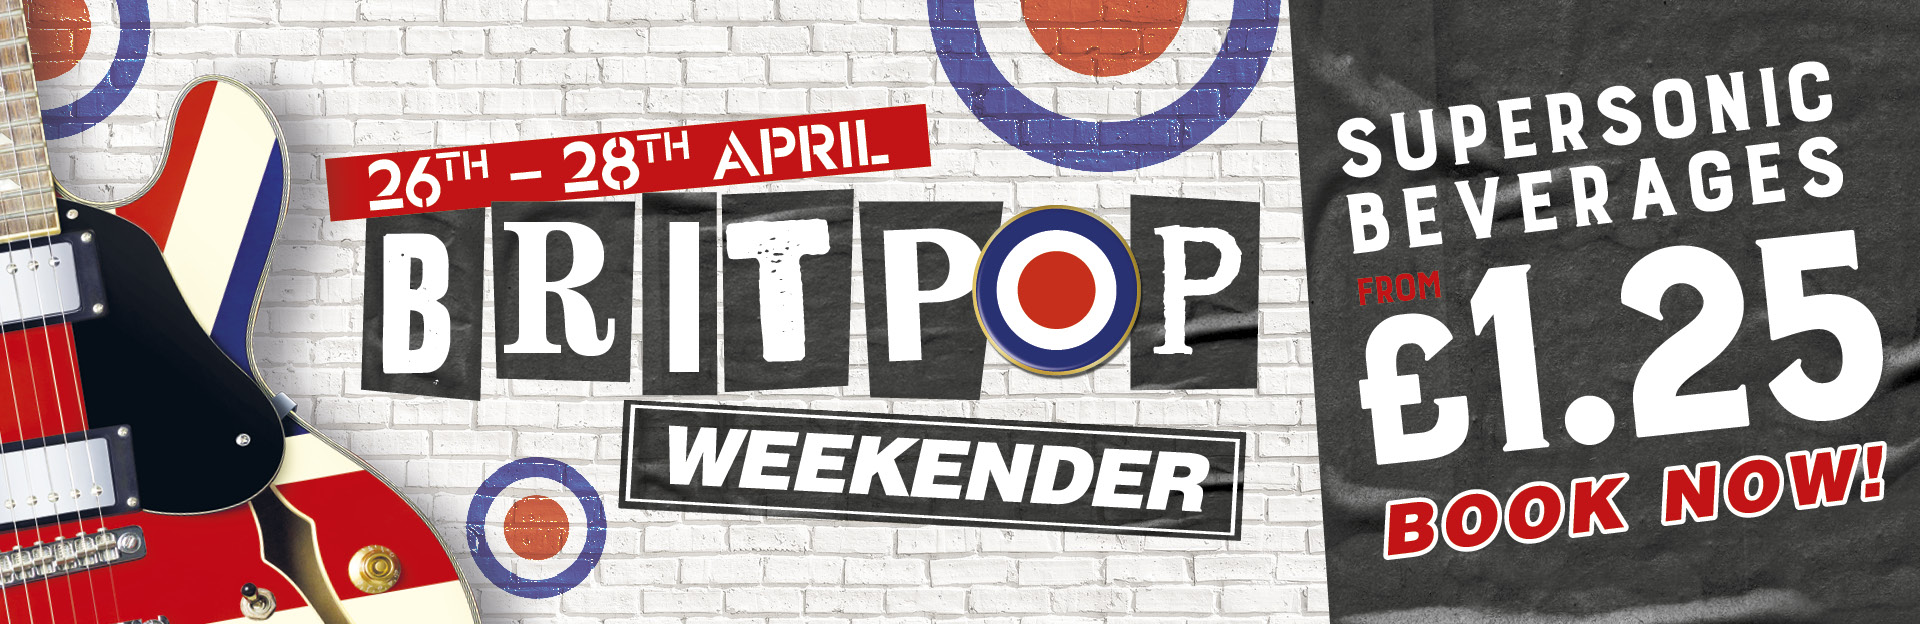 Britpop Weekender at The Duke of Wellington